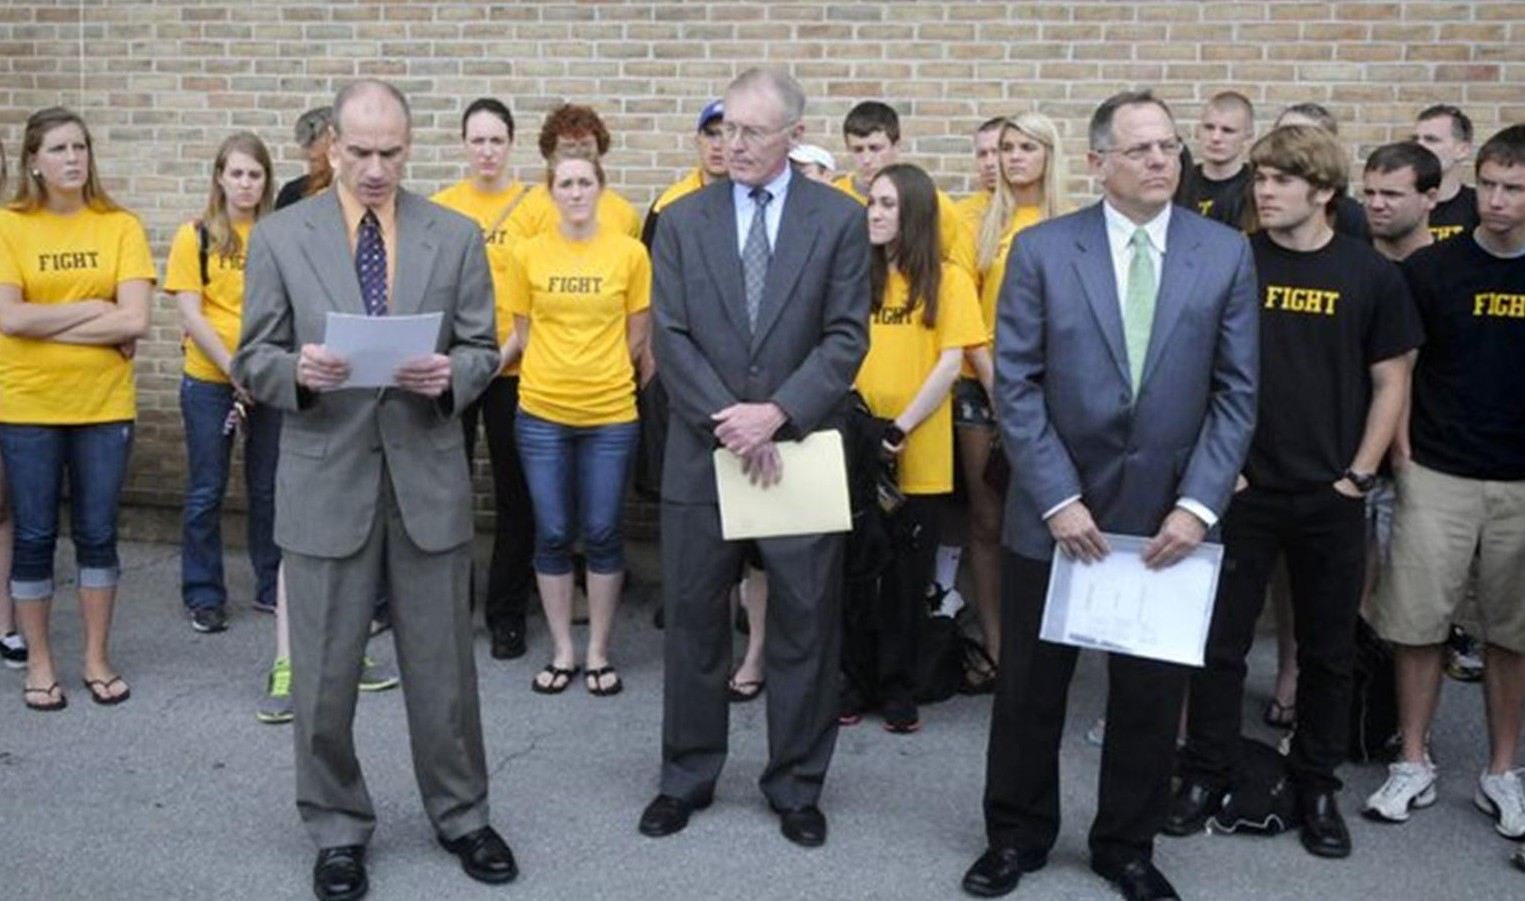 (Left to right): Bob Vasile, Tom Ecker, and Glenn Stephens, CROS representatives, hold a press conference in front of Biemesderfer Stadium.